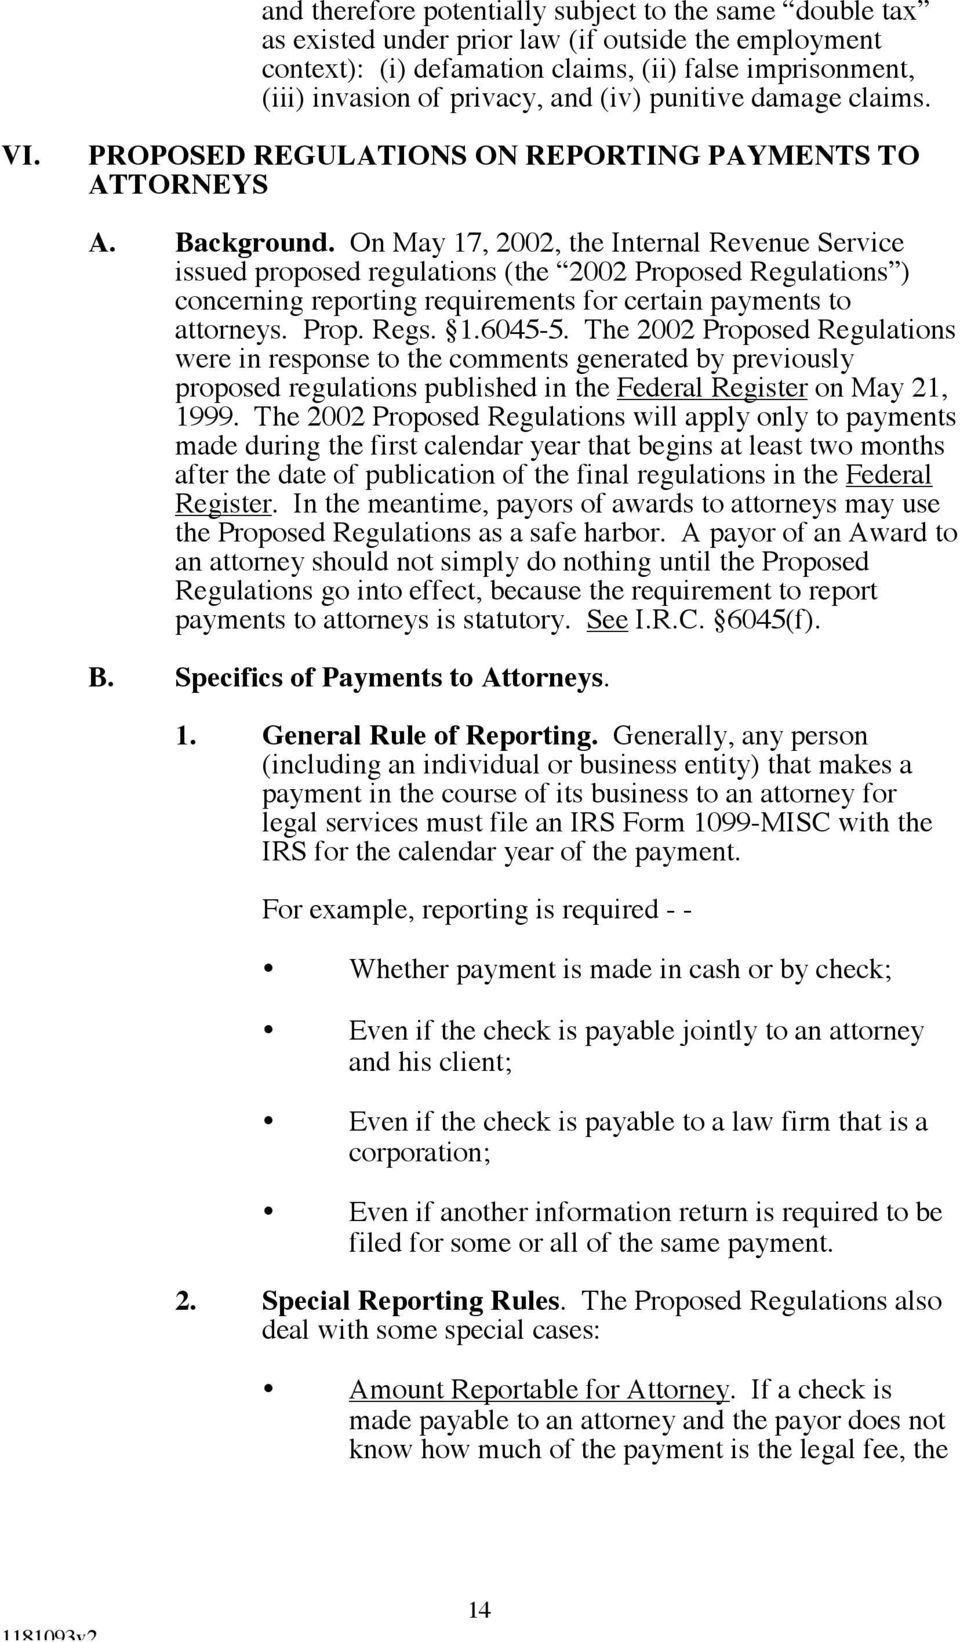 On May 17, 2002, the Internal Revenue Service issued proposed regulations (the 2002 Proposed Regulations ) concerning reporting requirements for certain payments to attorneys. Prop. Regs. 1.6045-5.